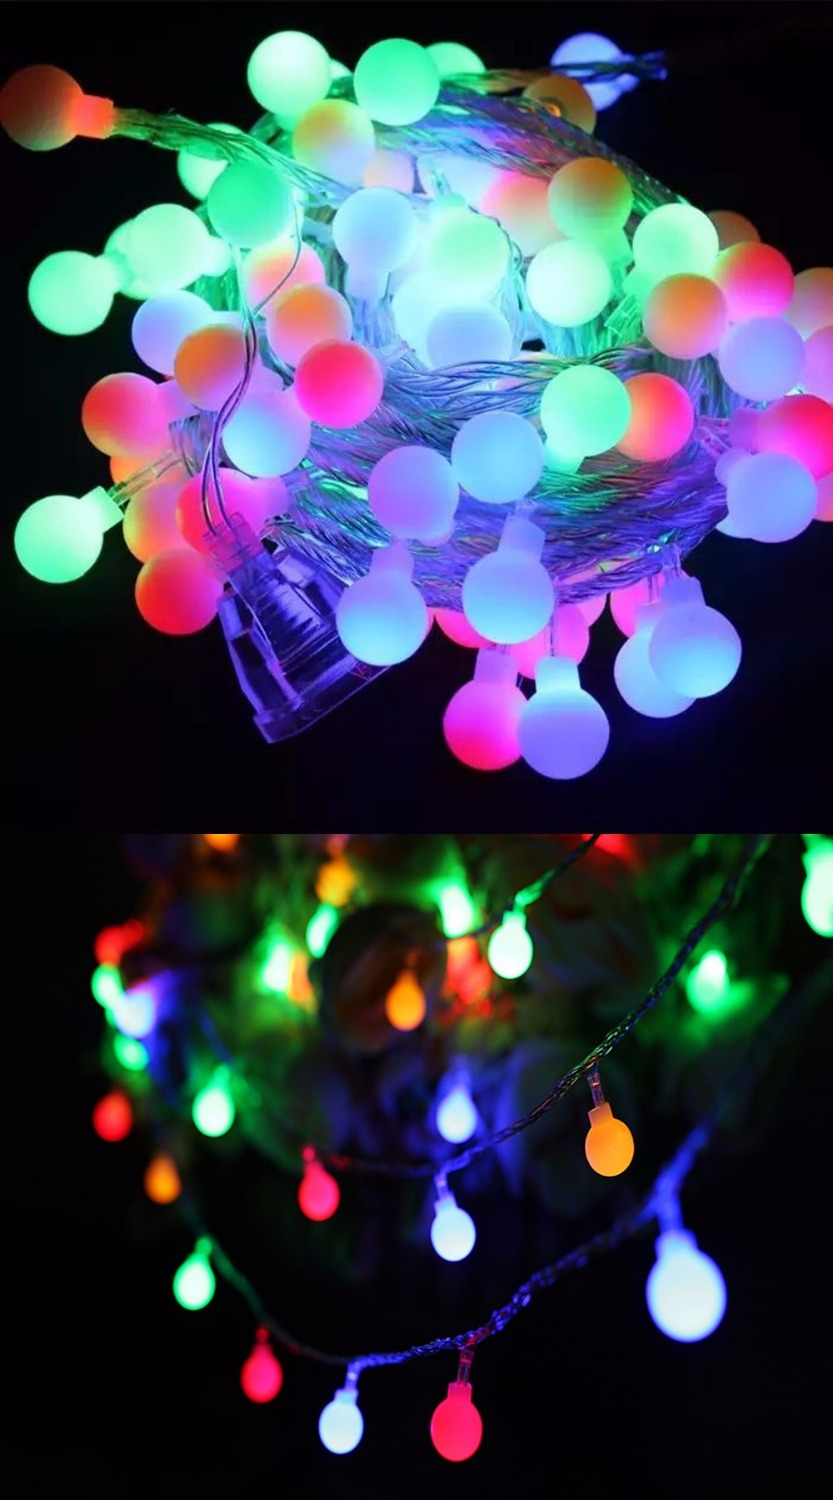 Novelty Outdoor Lights Part - 39: Novelty Outdoor Lighting LED Ball String Lamps 10m 100leds Christmas Lights  Fairy Wedding Garden Pendant Garland